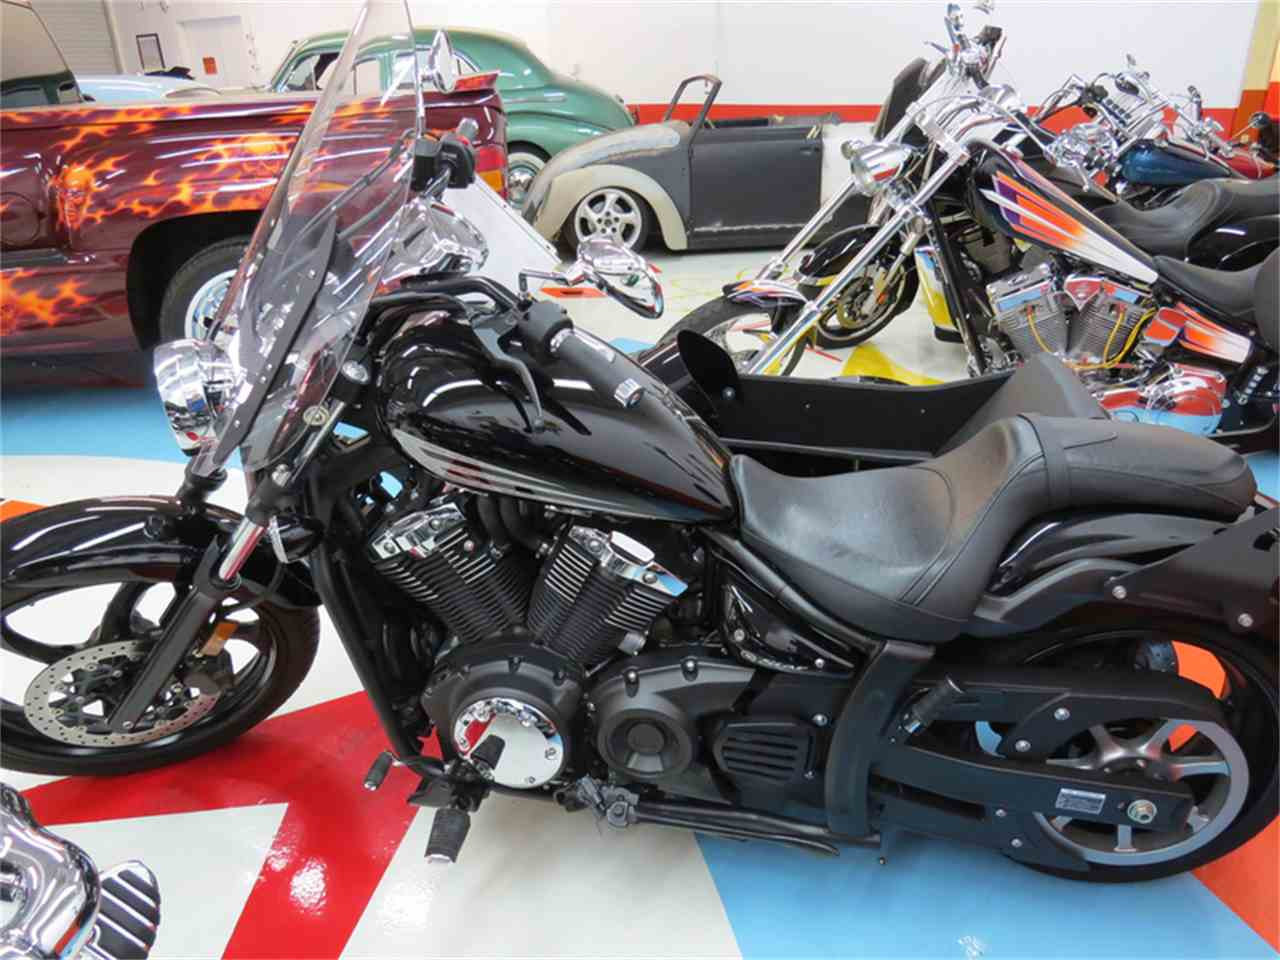 Large Picture of '11 XVS 1300 w/ Sidecar - L9T8